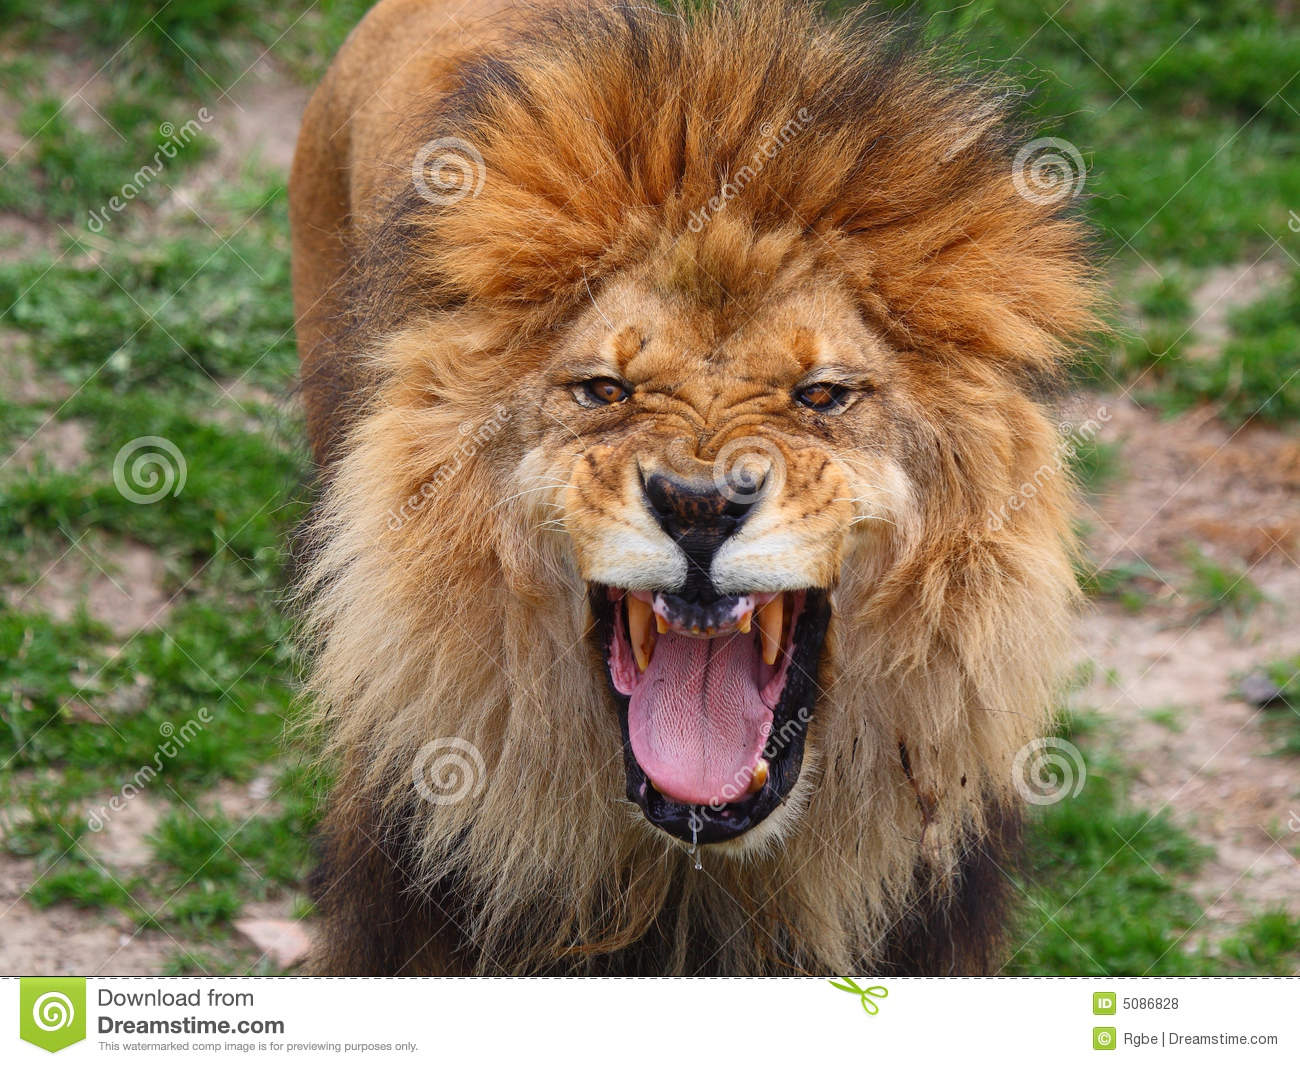 Lion Roar Royalty Free Stock Photos - Image: 5086828 - photo#28